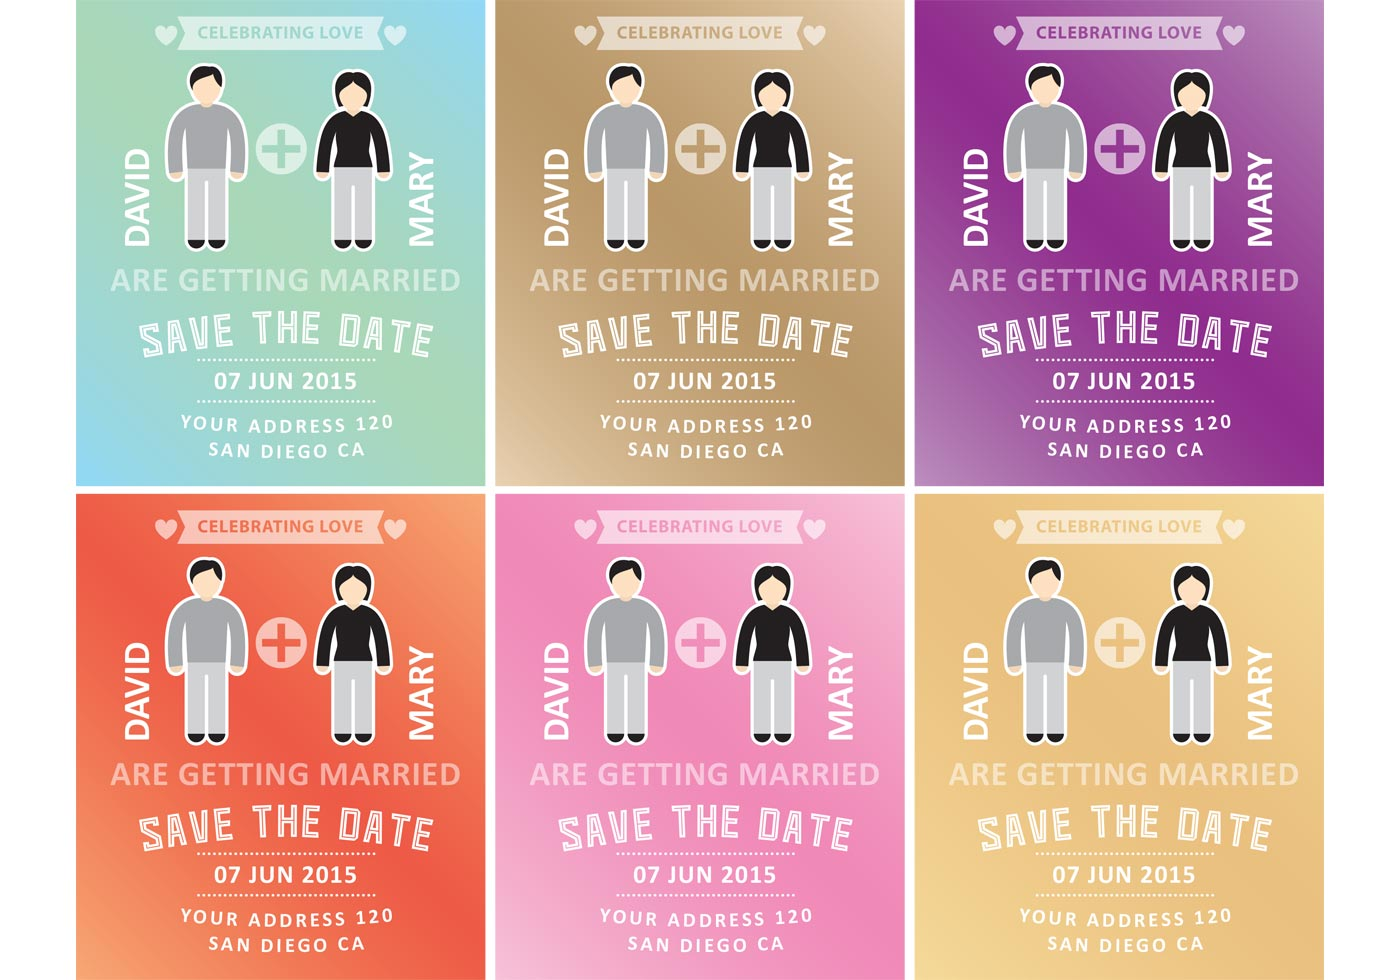 Marriage Invitation Templates - Download Free Vector Art, Stock ...